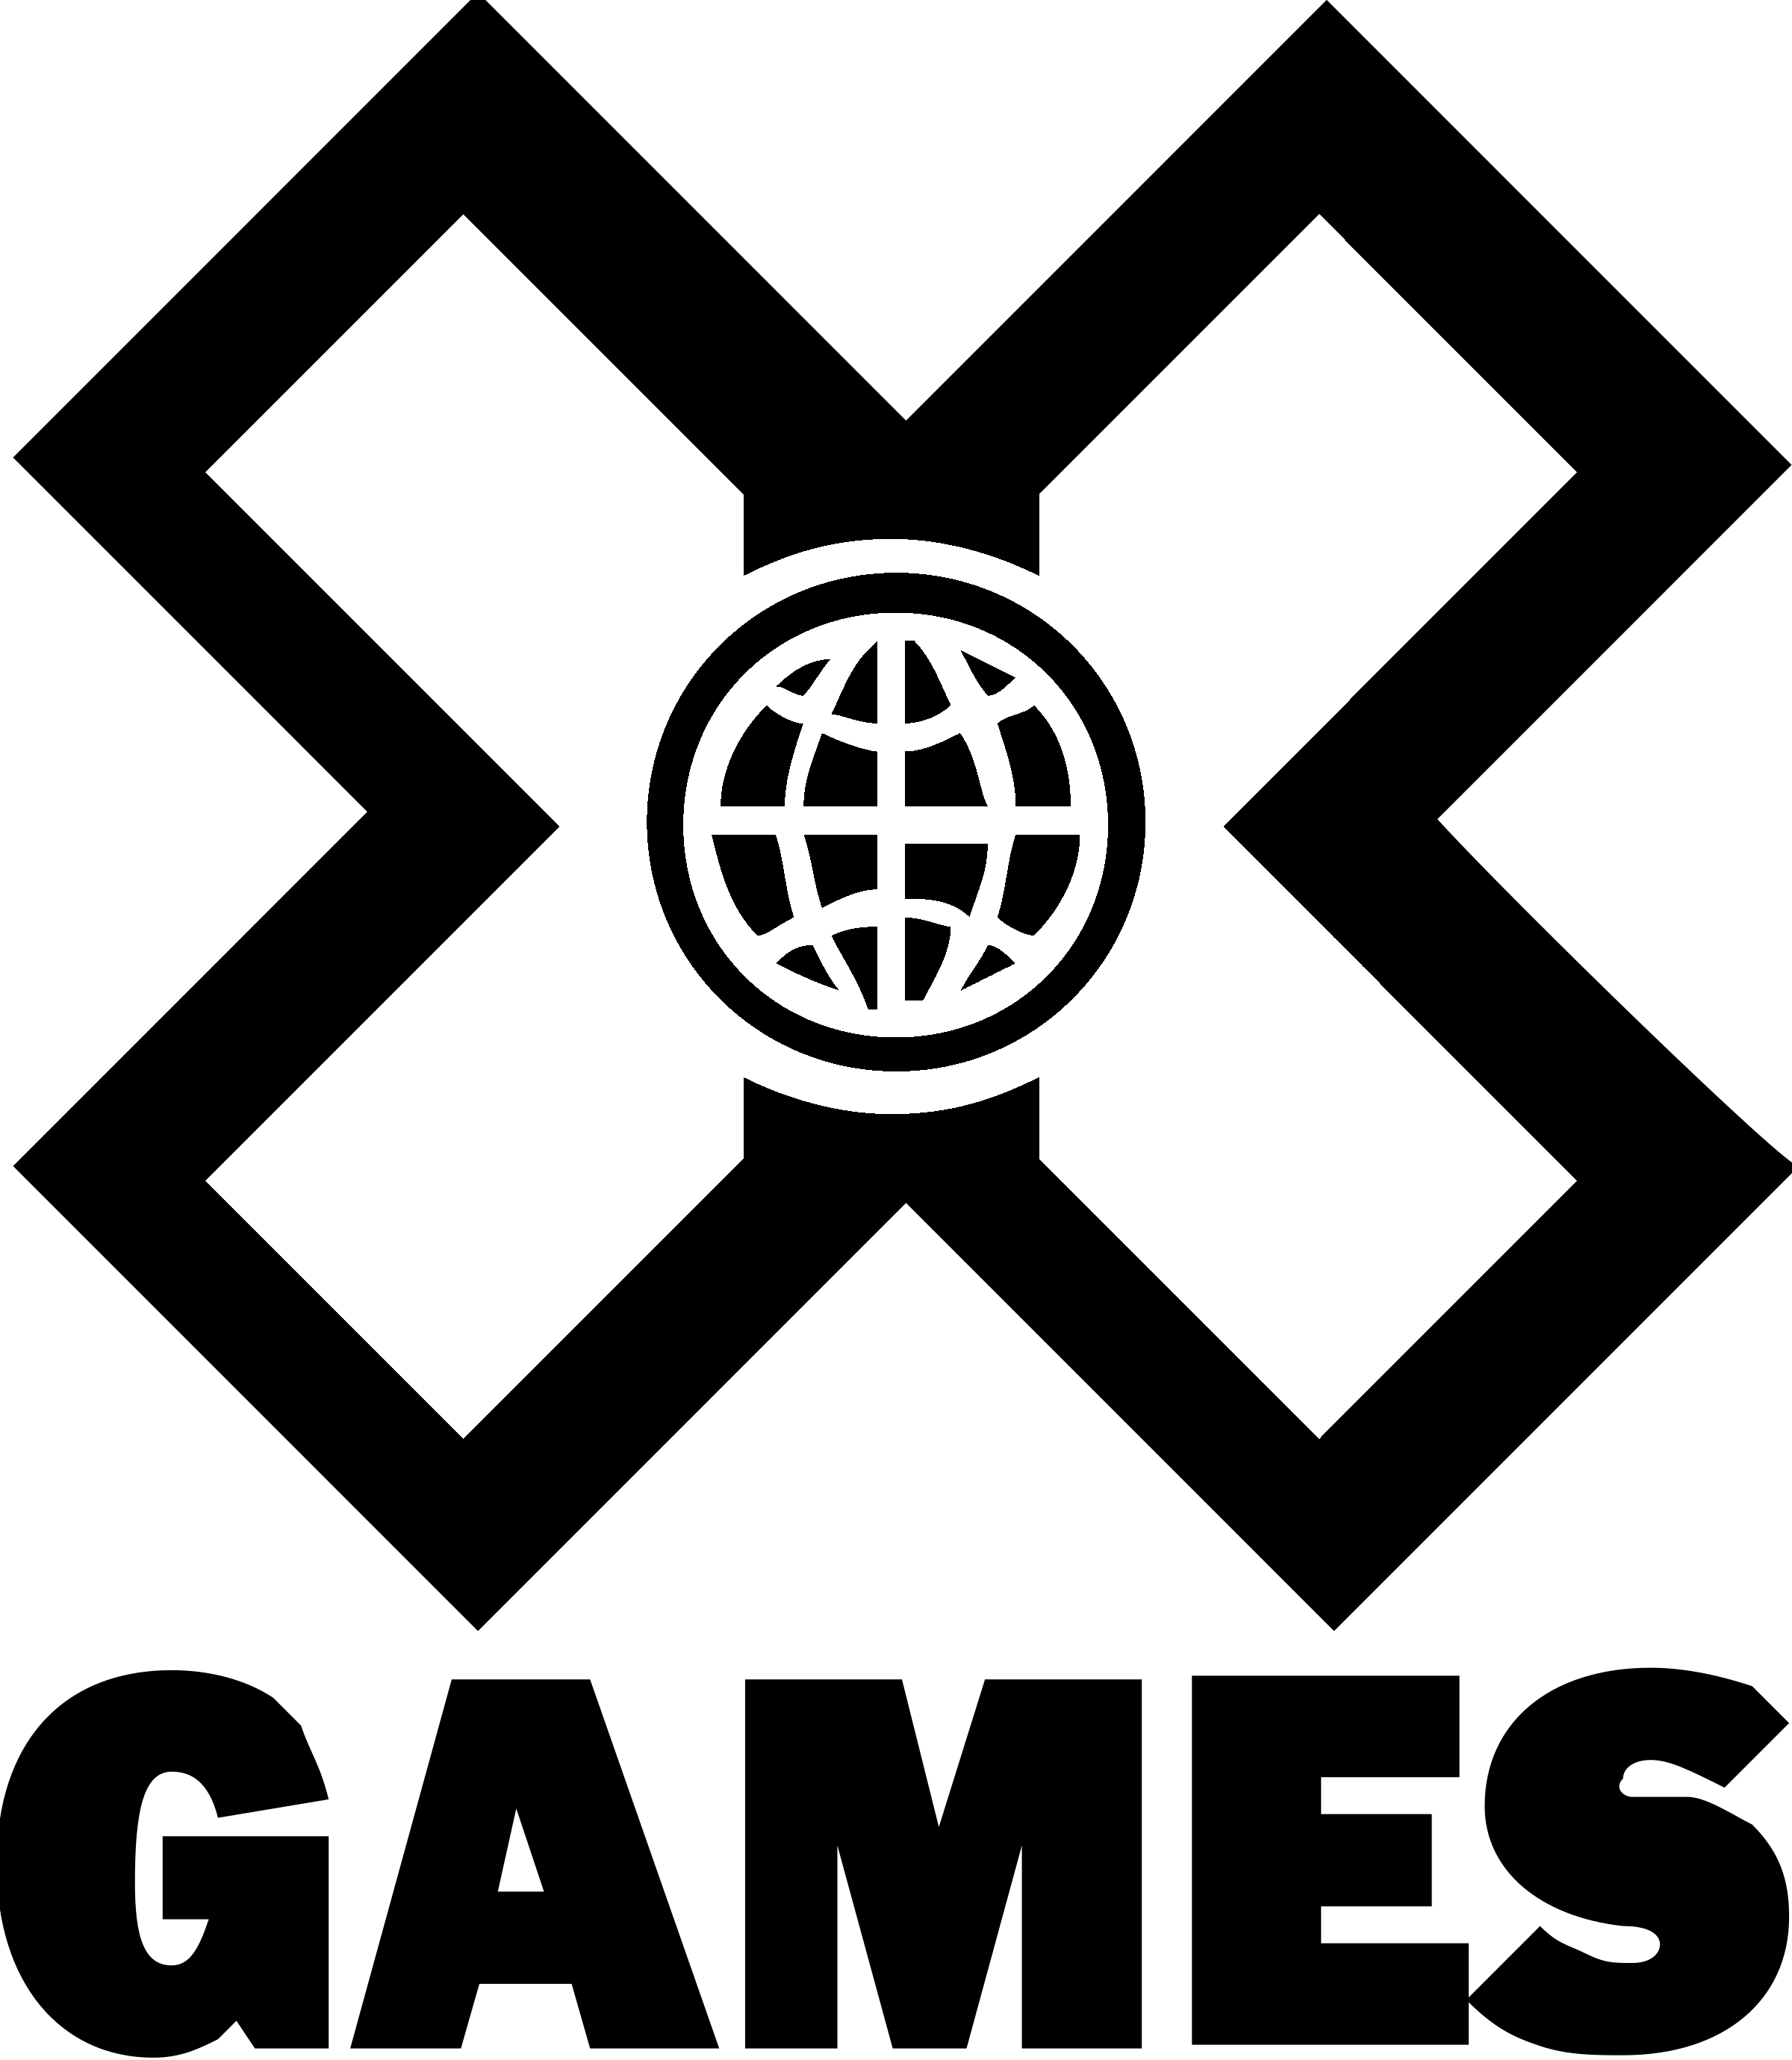 x-games-2-logo-black-and-white.png